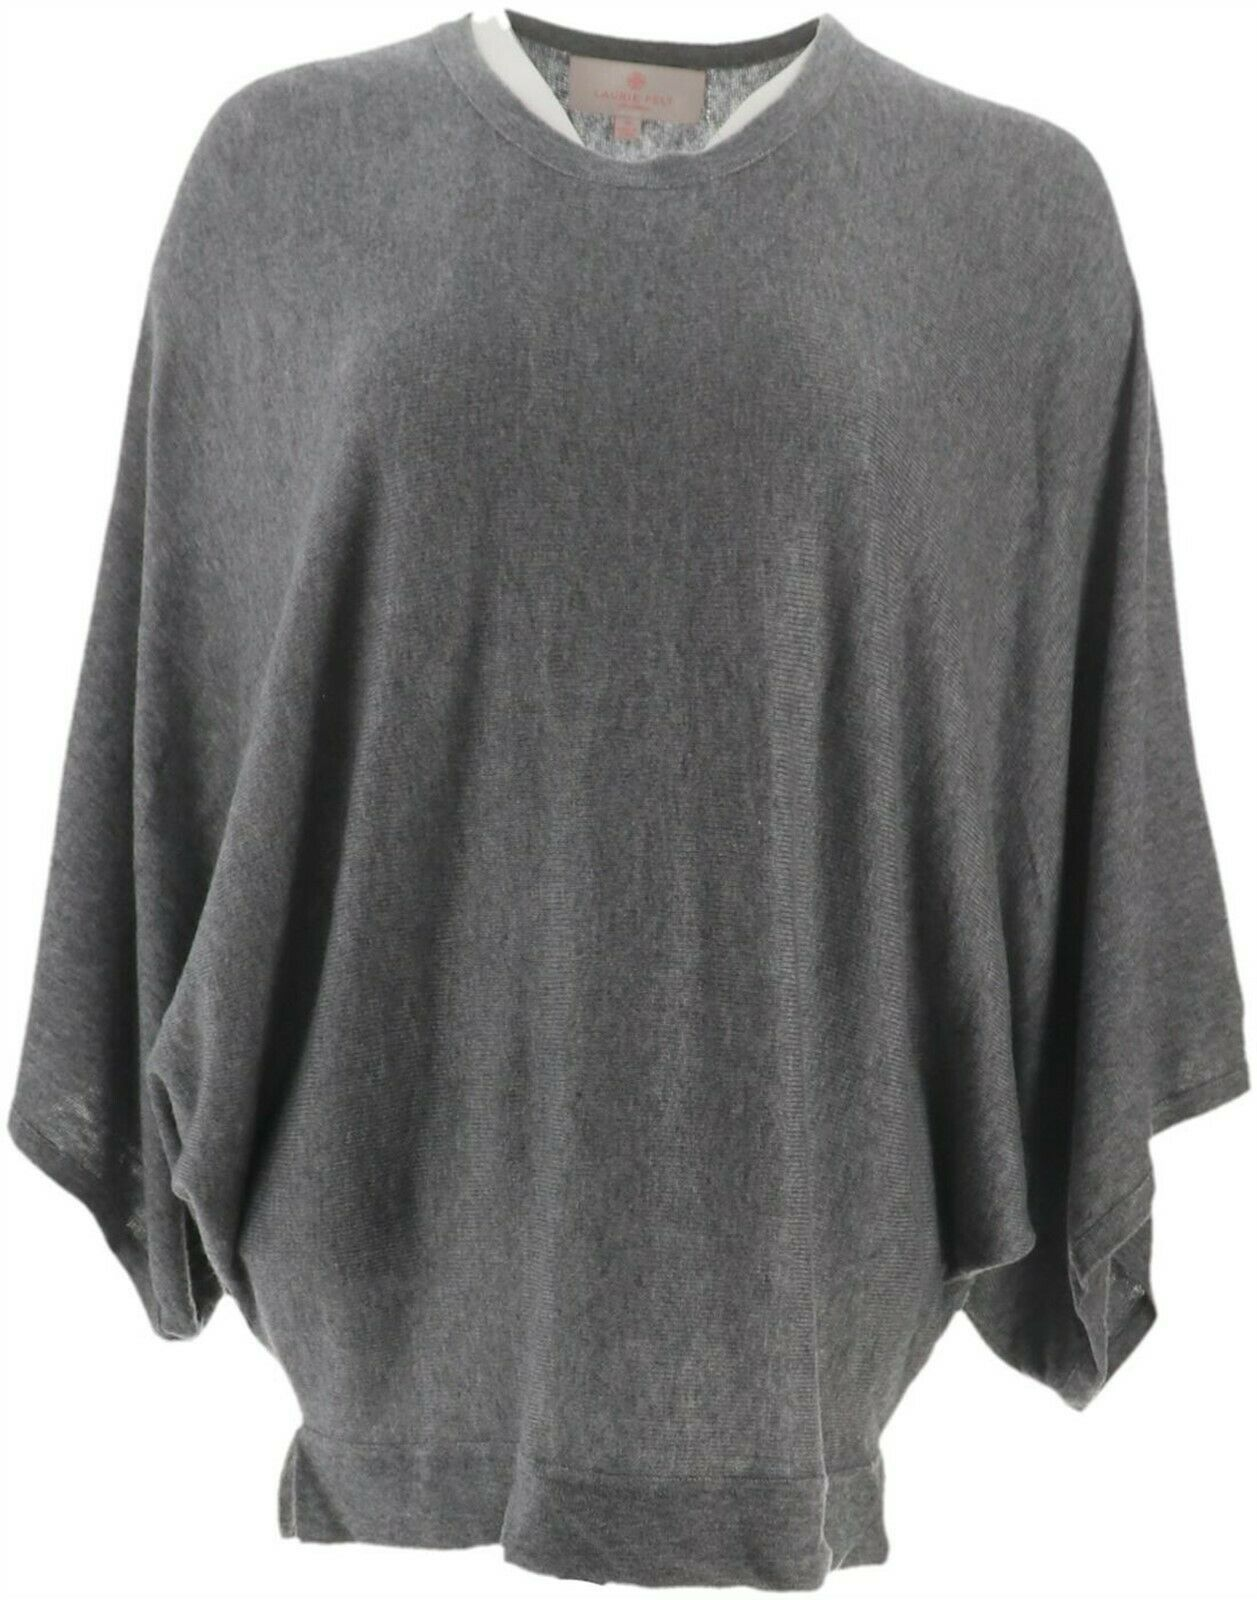 Primary image for Laurie Felt Cashmere Blend Knit Scoop-Neck Poncho DeepHeatherGrey 2X NEW A301698